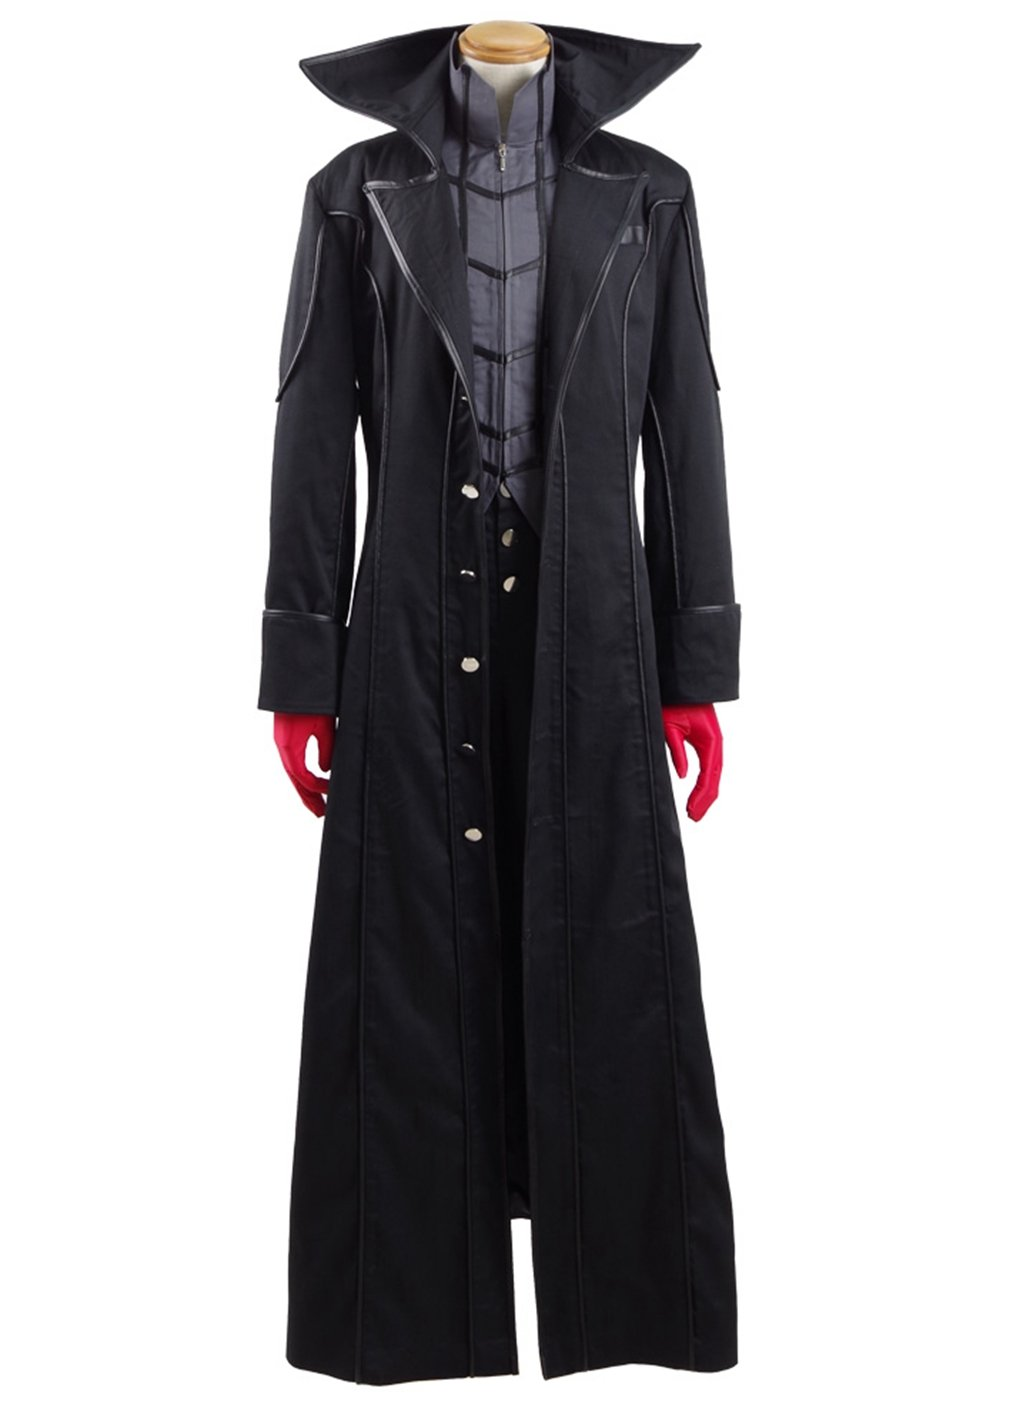 Costume Party Heart Mens Winter Long Trench Coat Knee Length Black Jacket